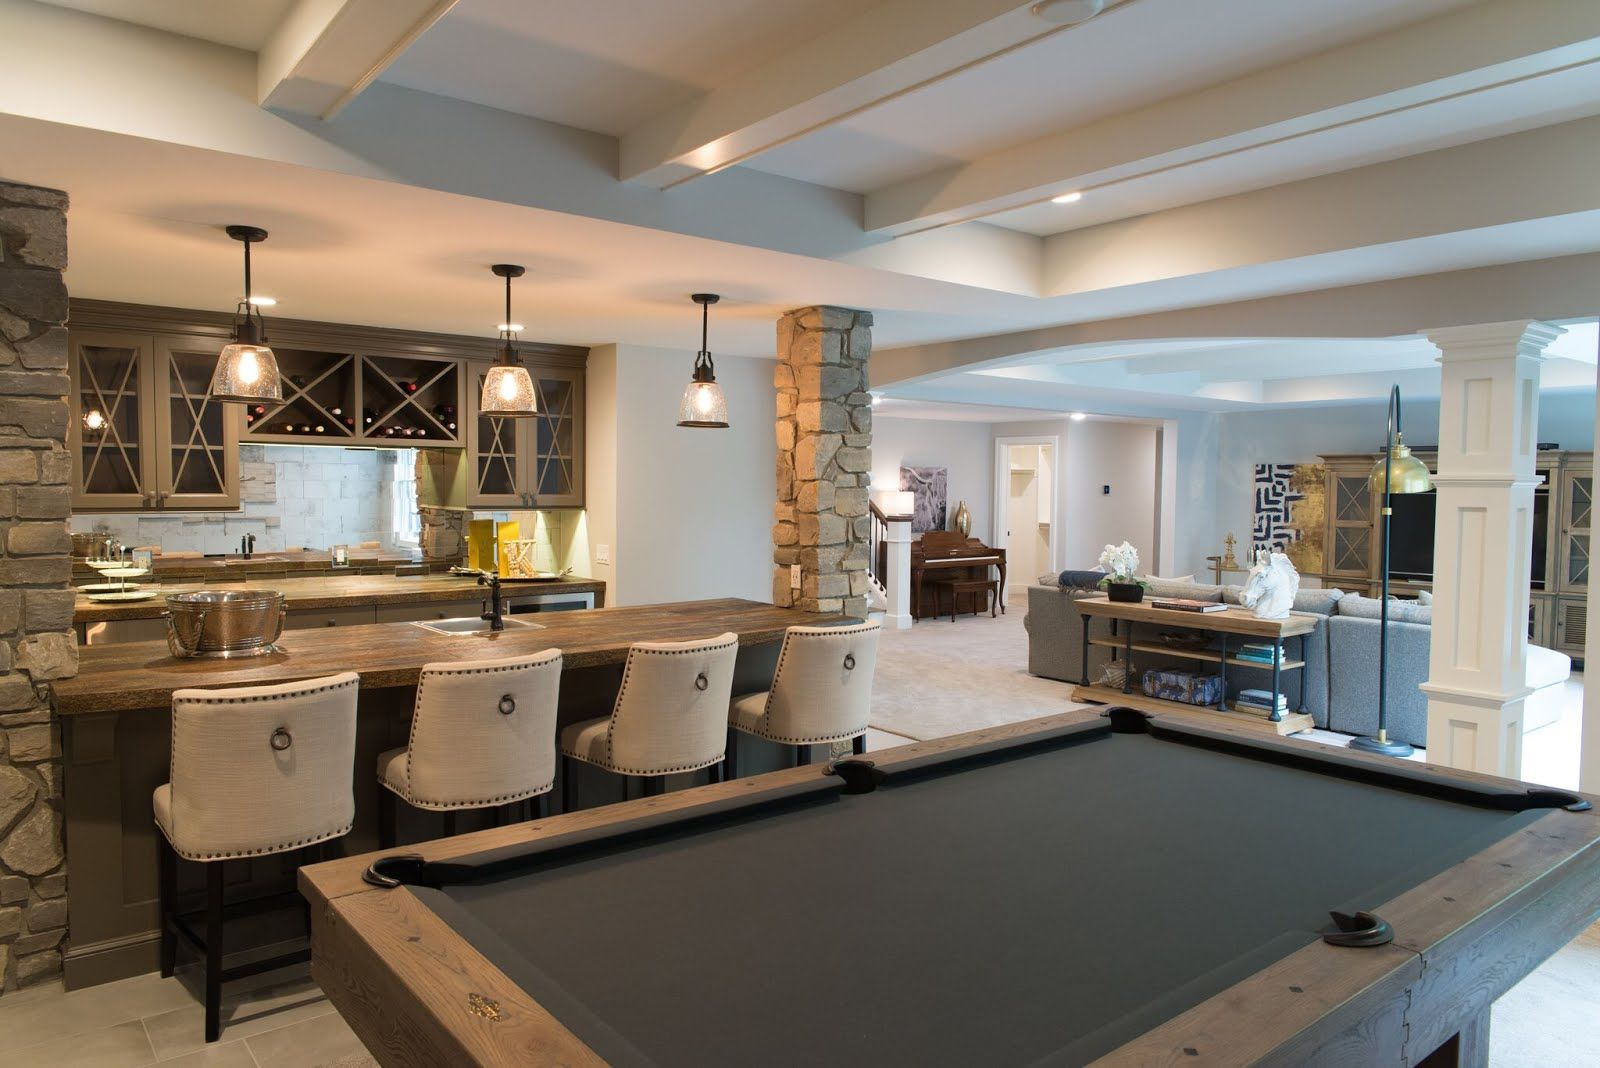 welcome to my home: our little slice of heaven | basements, house